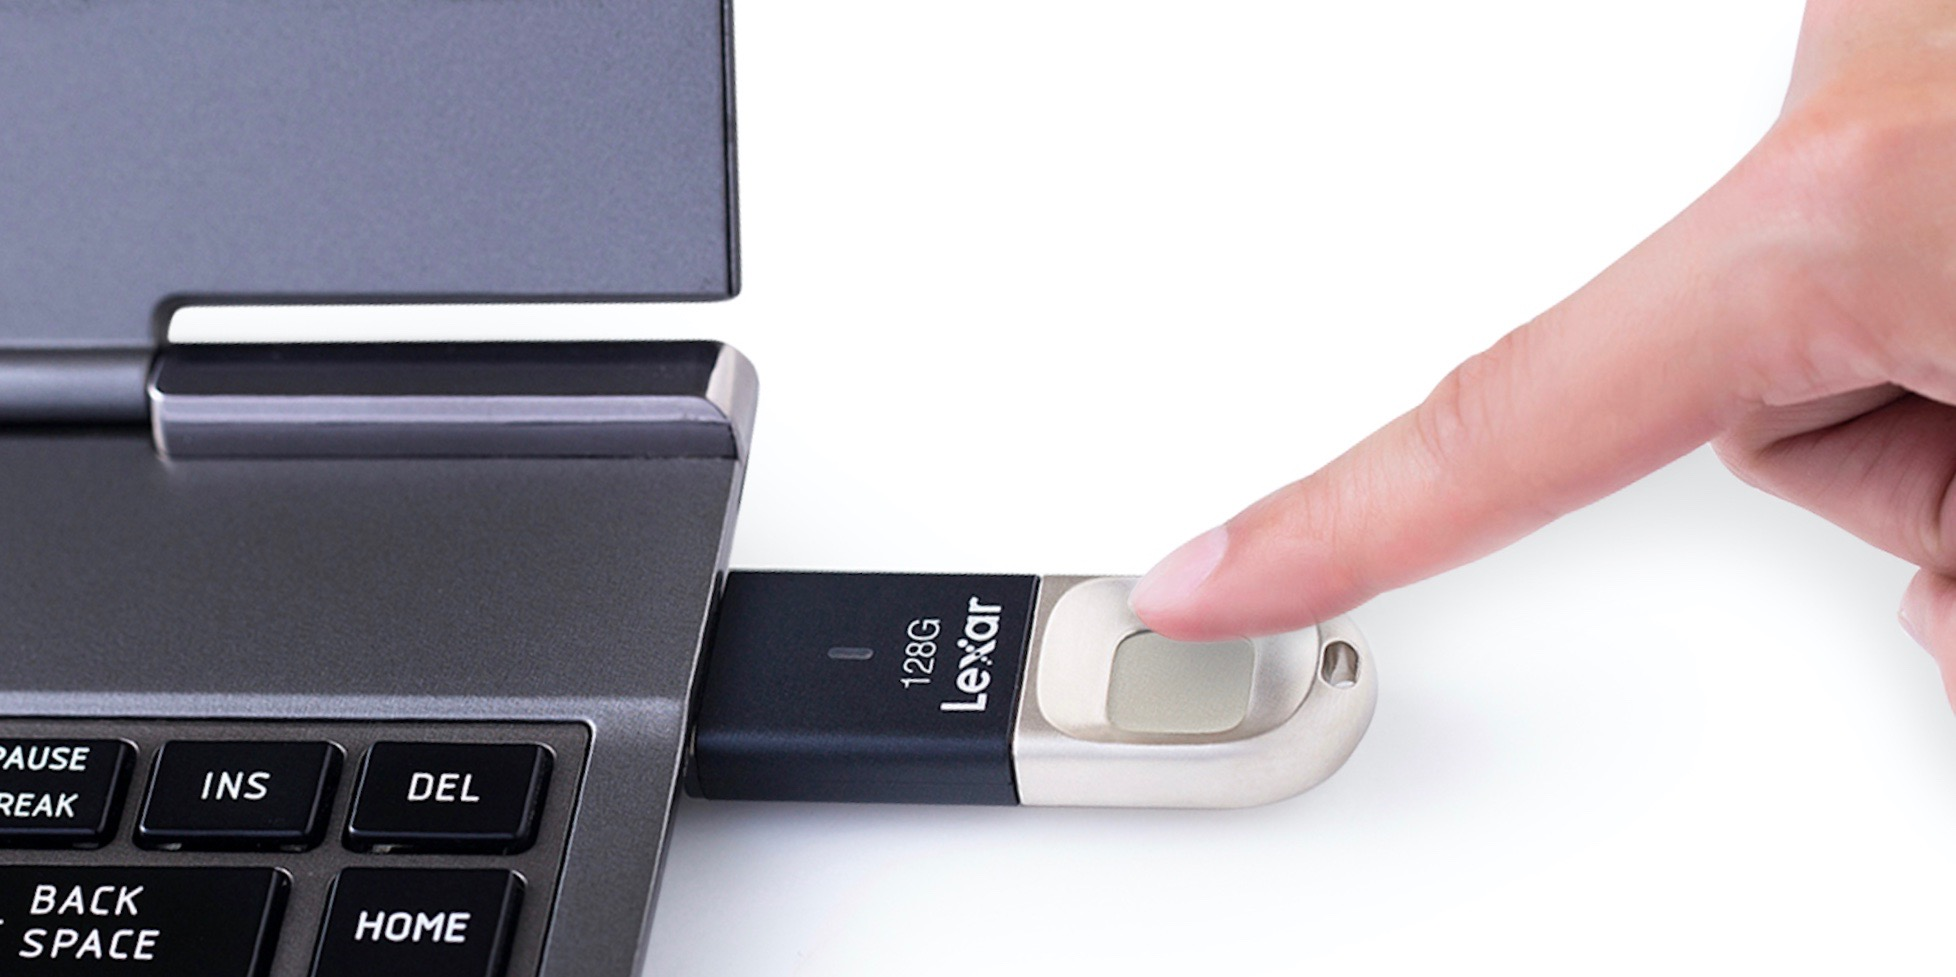 lexar launches new jumpdrive fingerprint secure usb 3 0 flash drives with 256 bit encryption